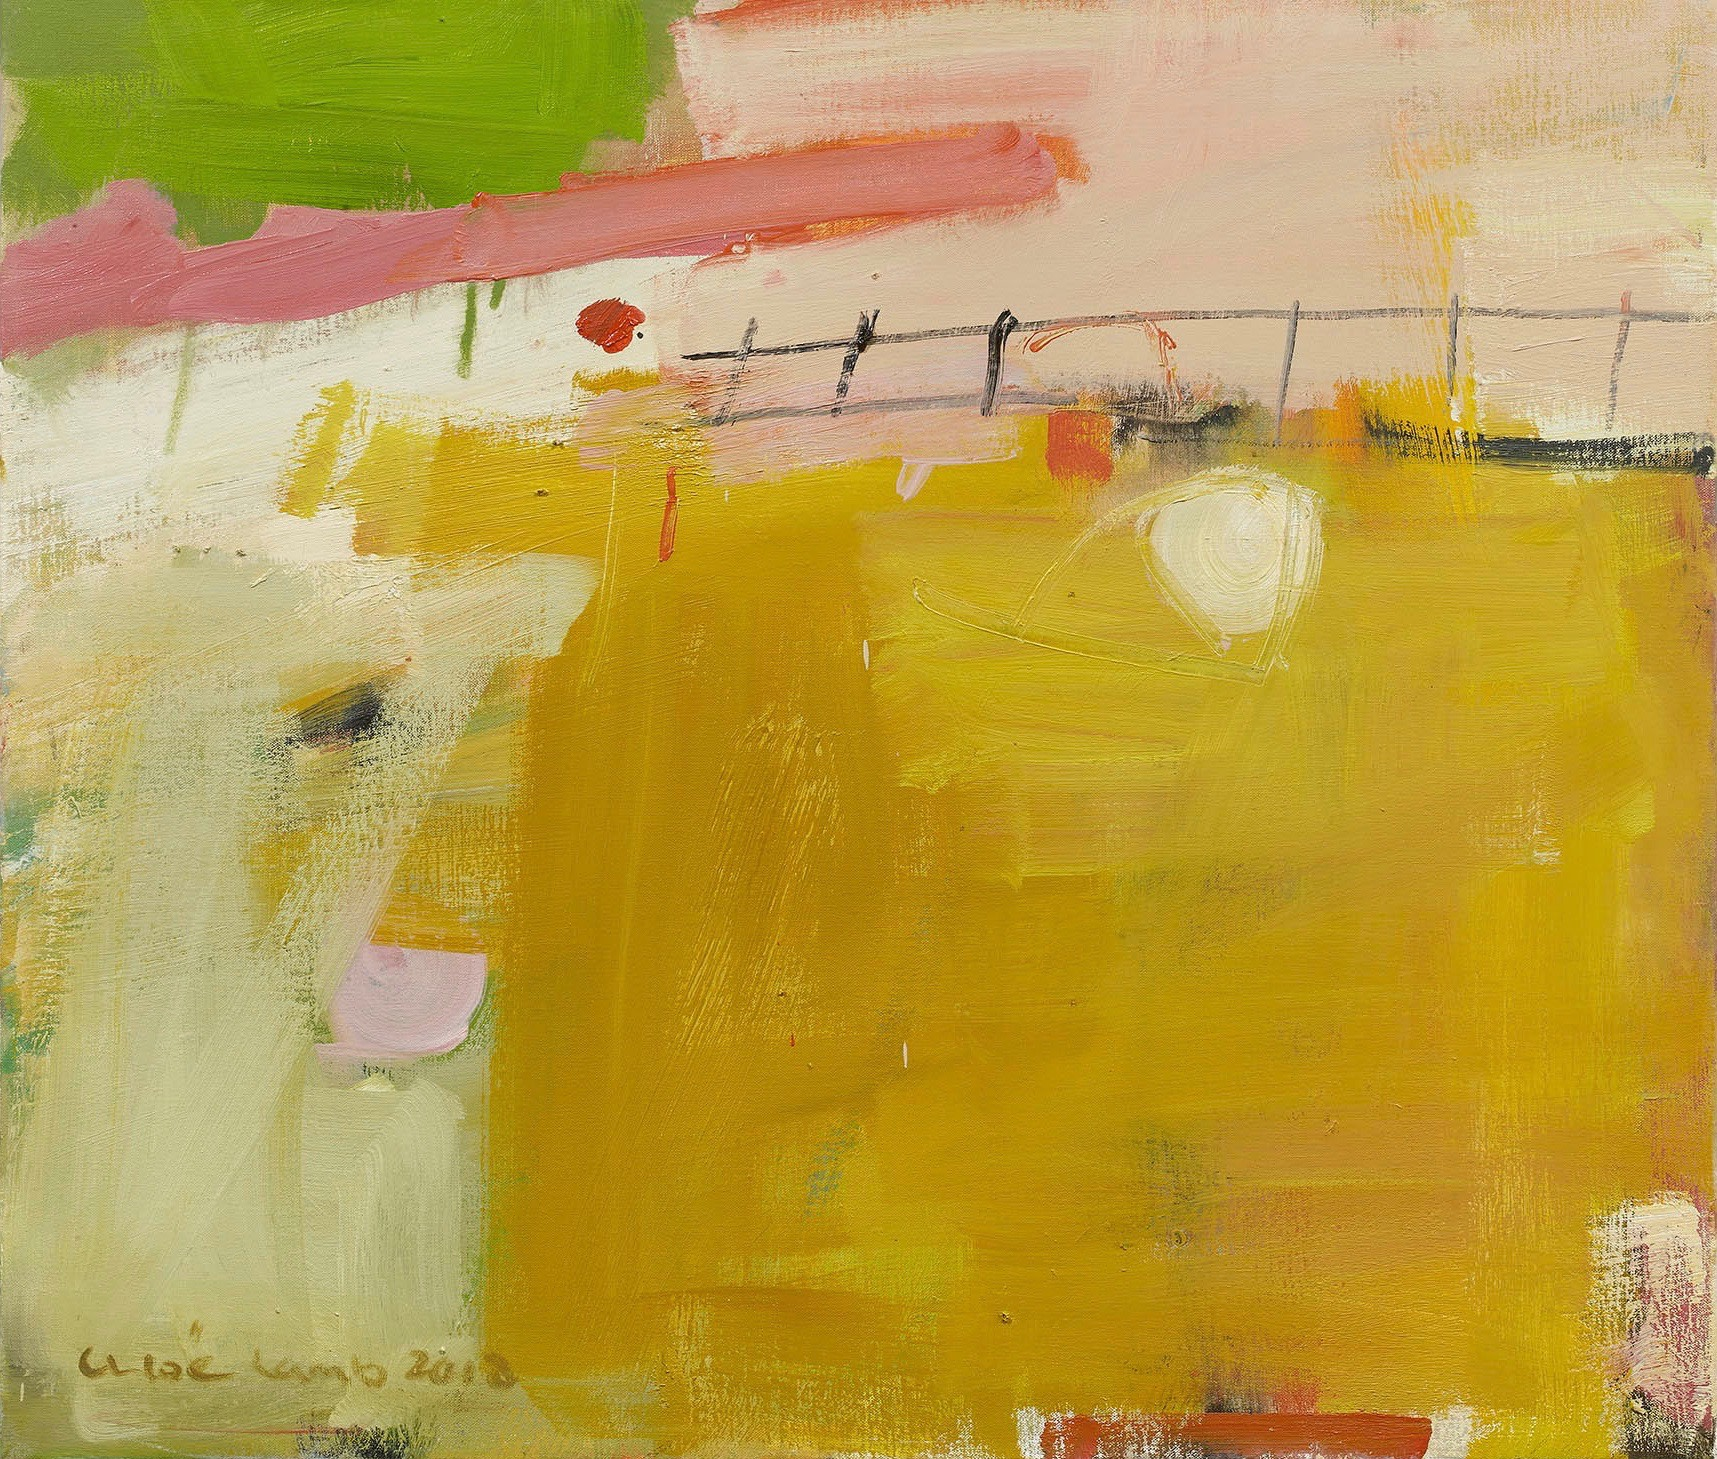 Chloe Lamb, Pink, Yellow and Green (Hungerford Gallery) | Cricket ...